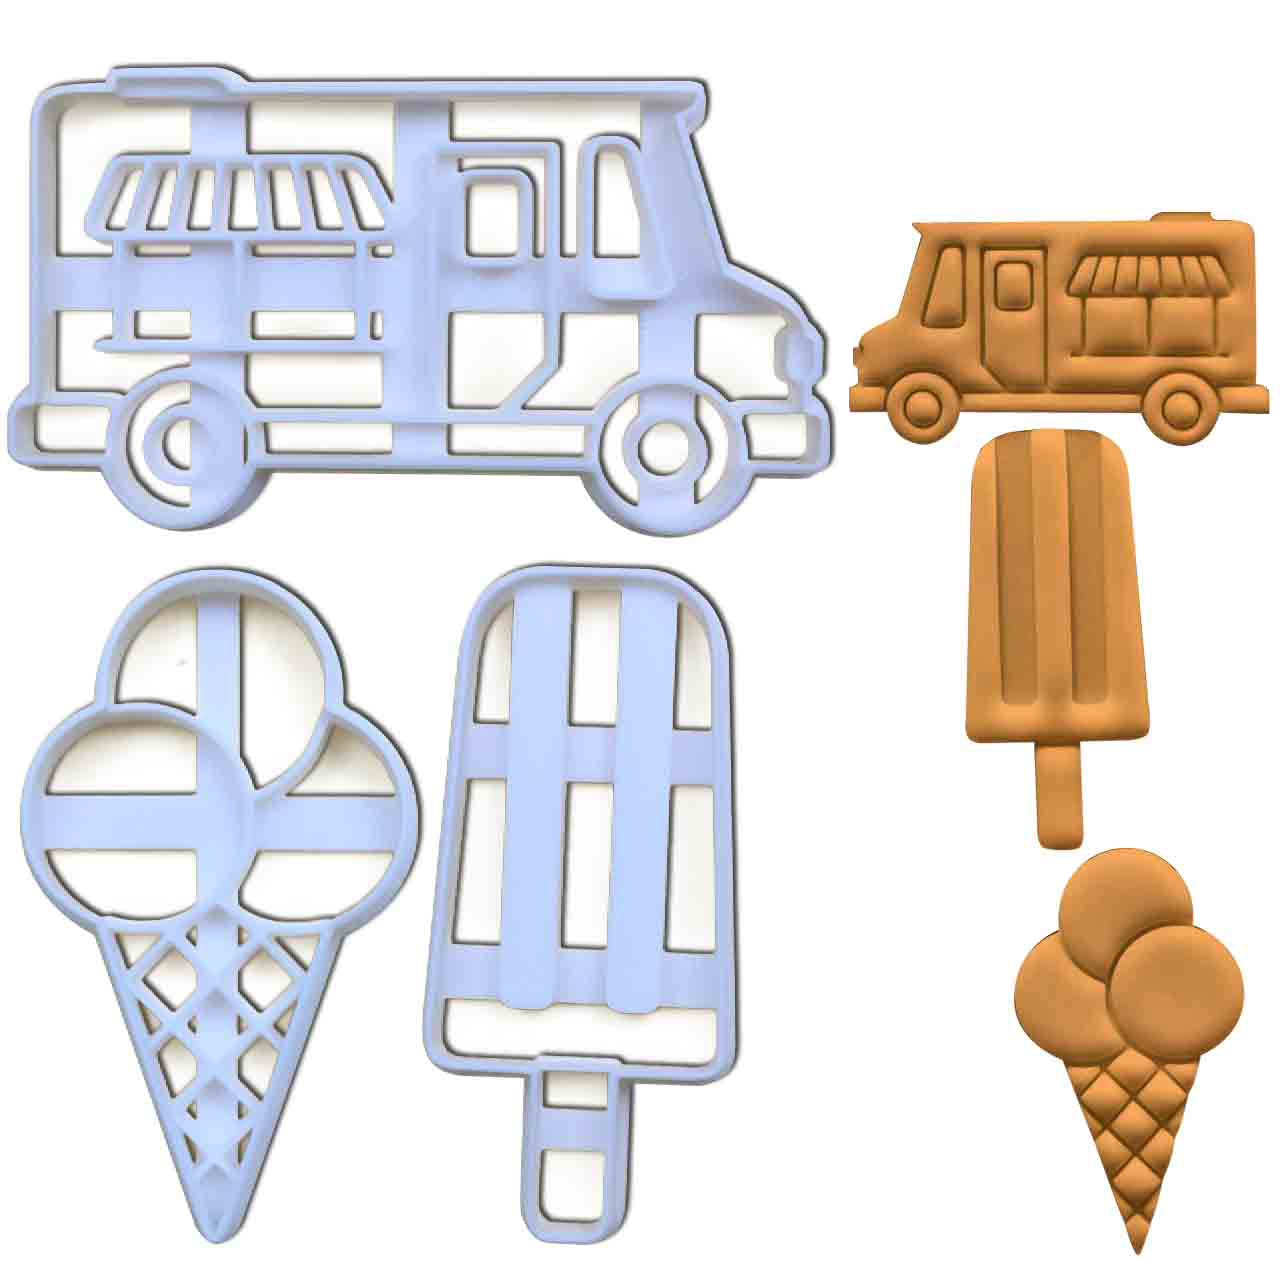 Ice Cream Cone, Ice Lolly and Ice Cream Truck Cookie Cutters